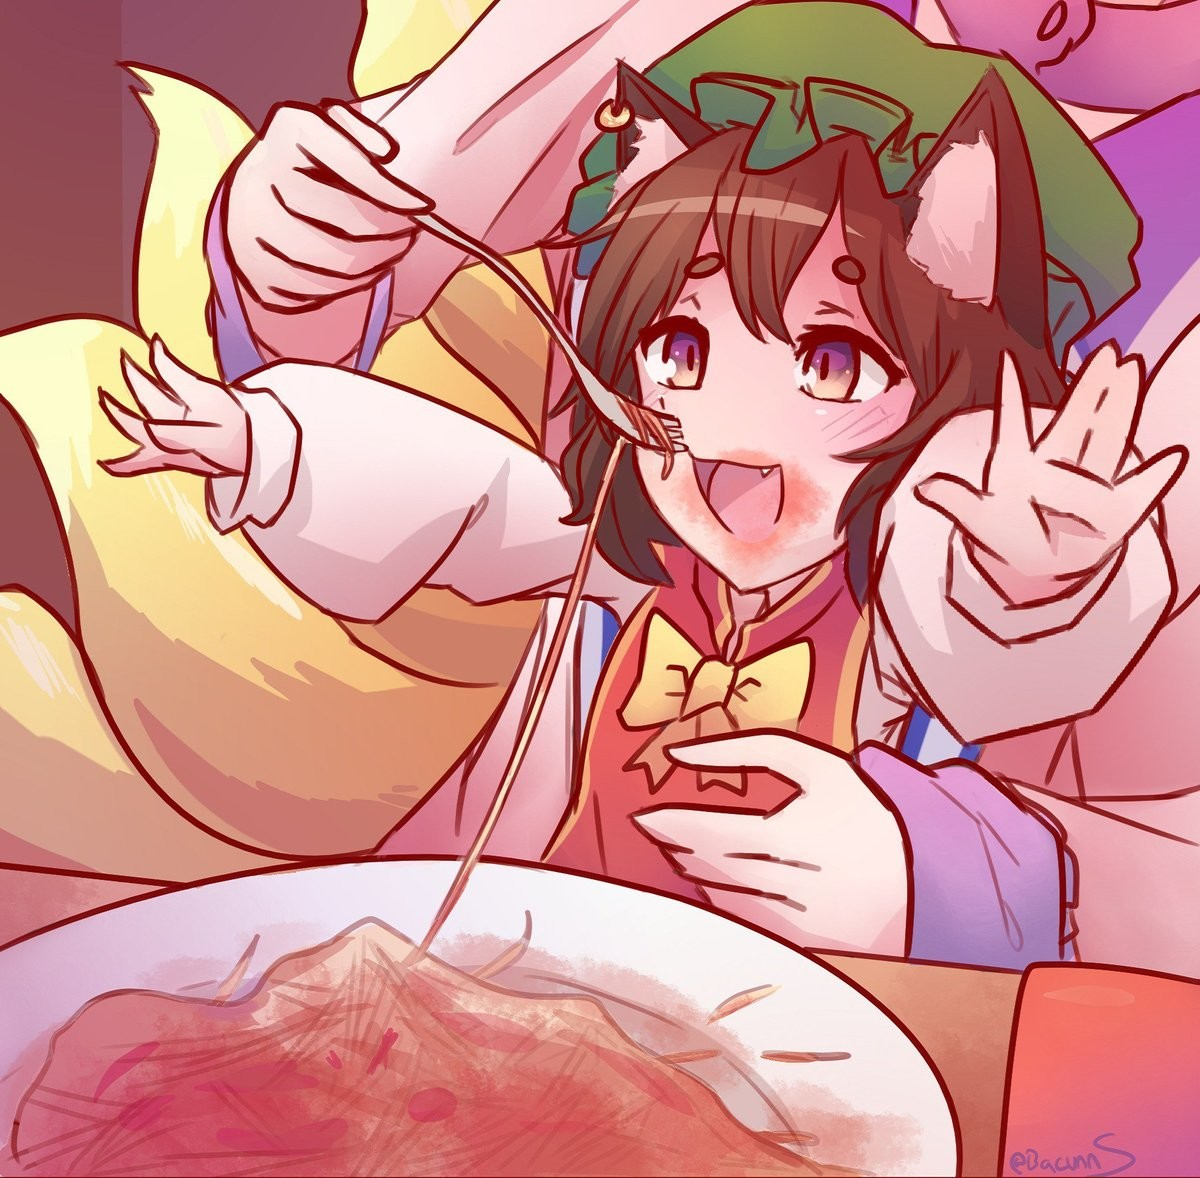 Chen gets Spaghetti. Source https://twitter.com/BacunnS/status/1019651827896209408 join list: TouhouWaifu (49 subs)Mention History join list:. leolol u might like this